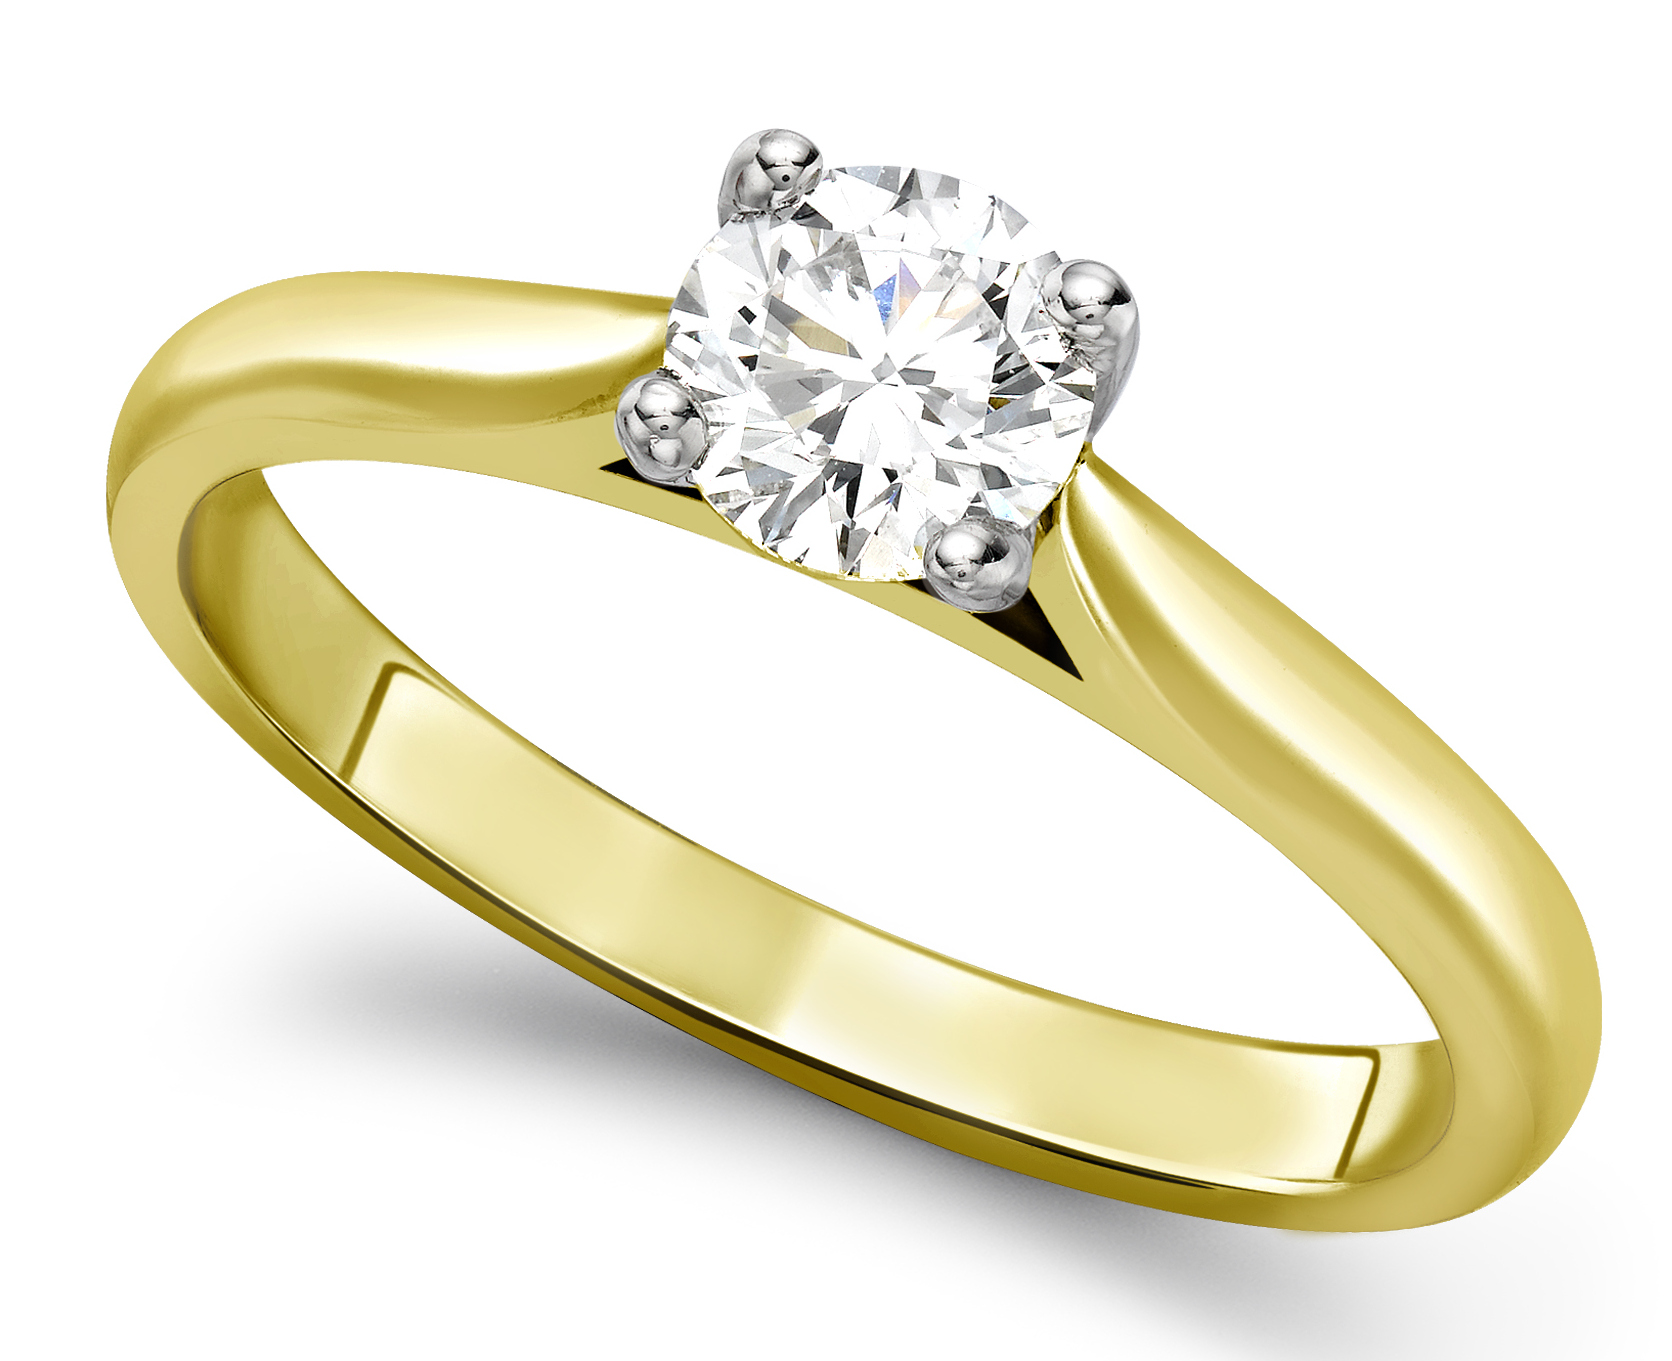 Round Four Claw Yellow Gold Engagement Ring GRC680YG Main Image